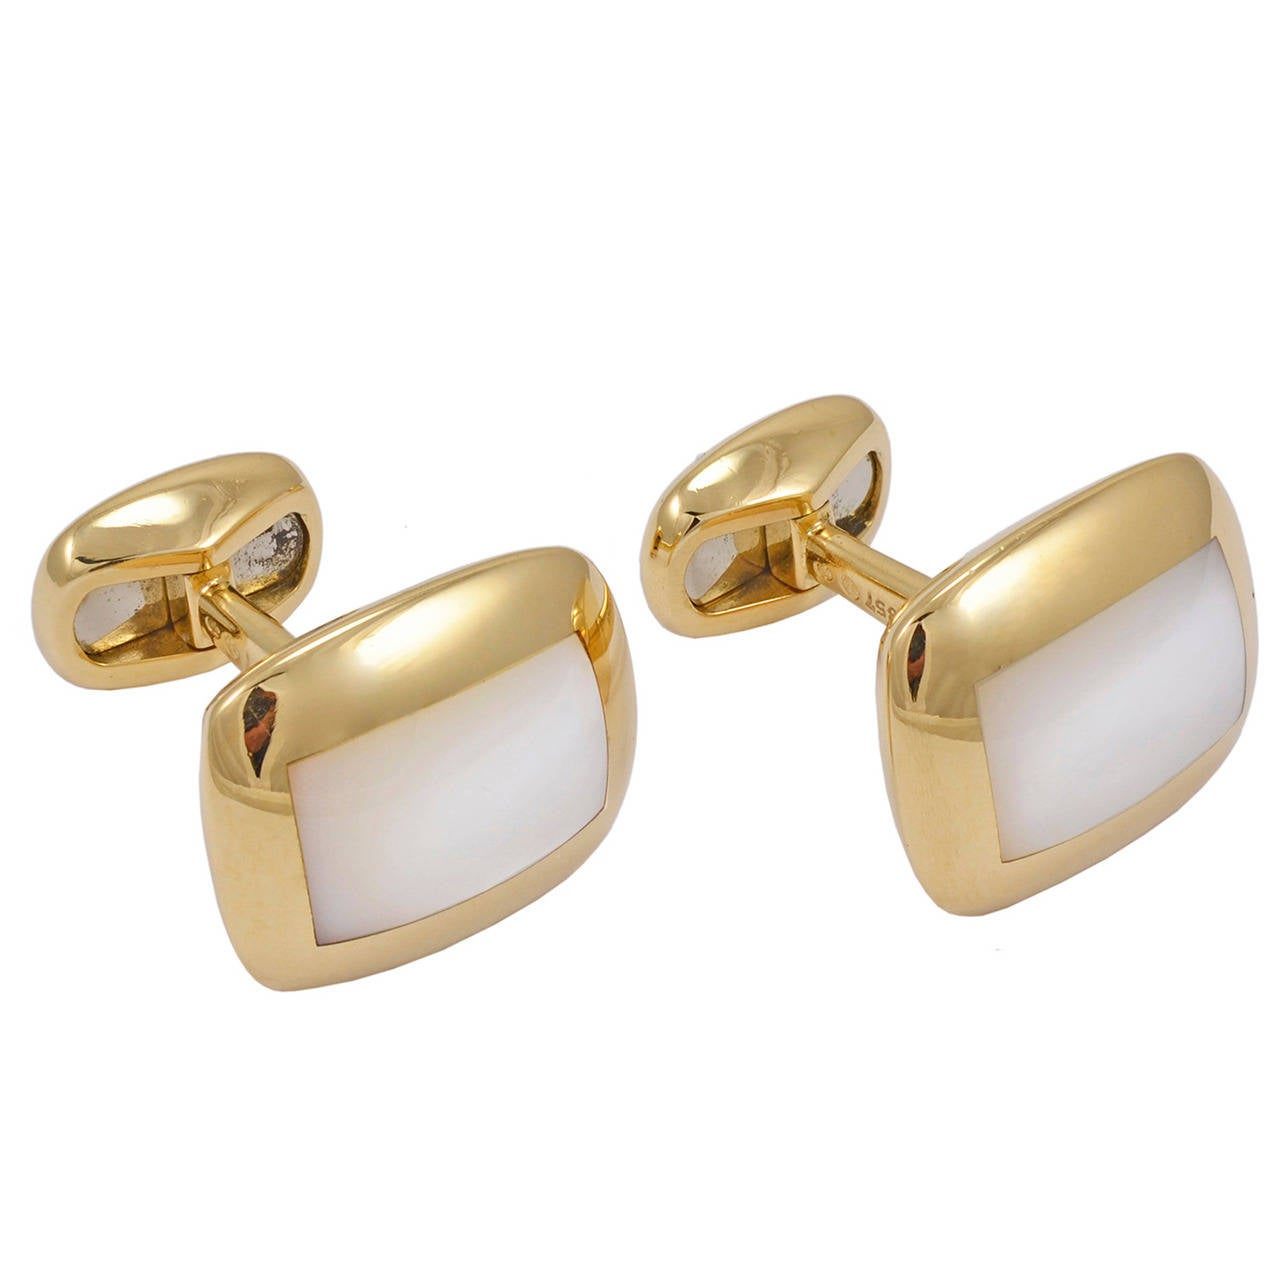 Van Cleef & Arpels Mother of Pearl Gold Cufflinks